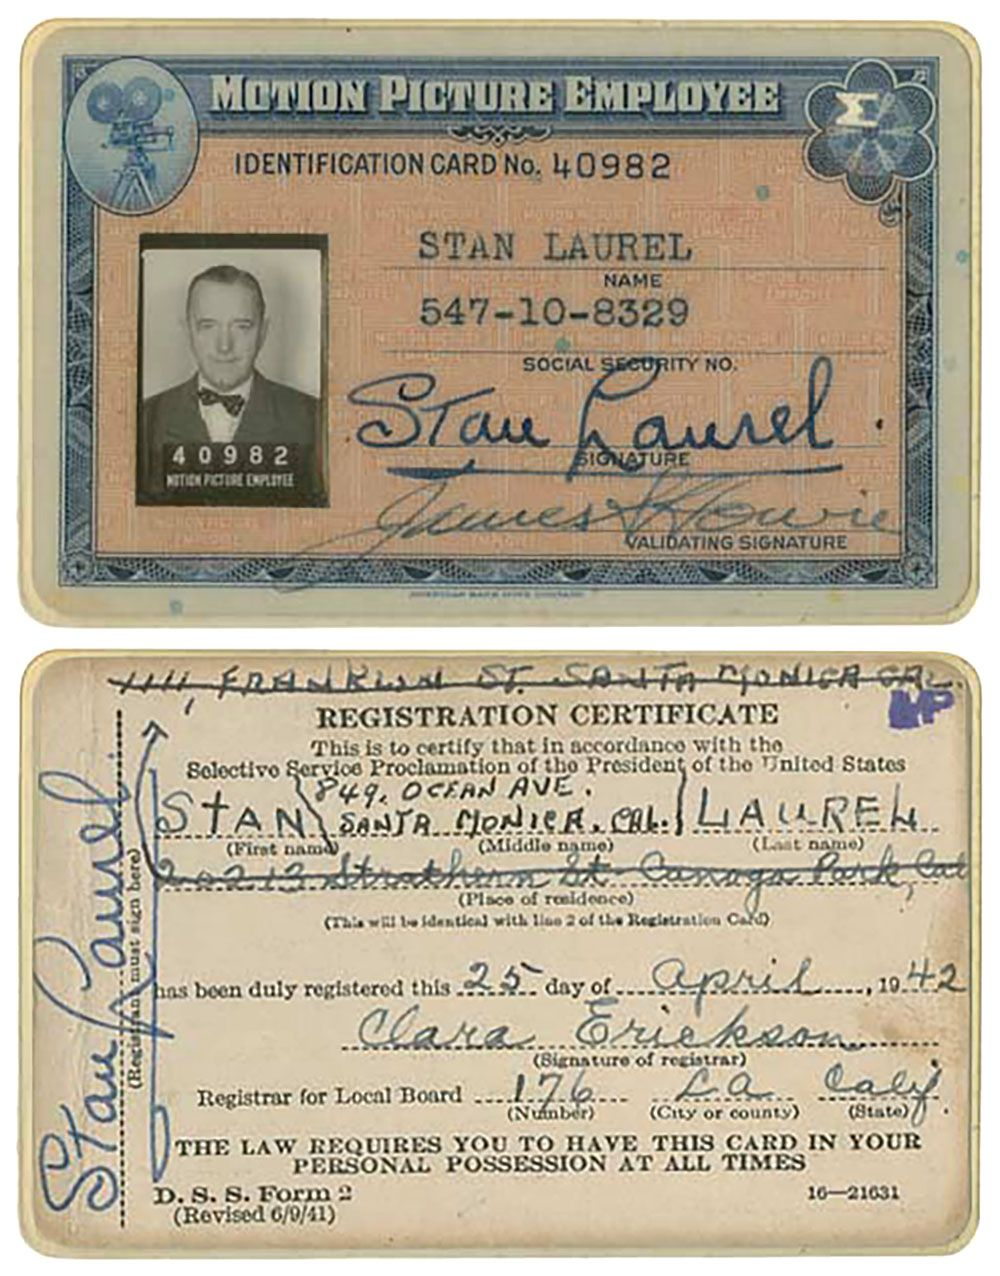 Stan LaurelS Wartime Motion Picture Employee Identification Card